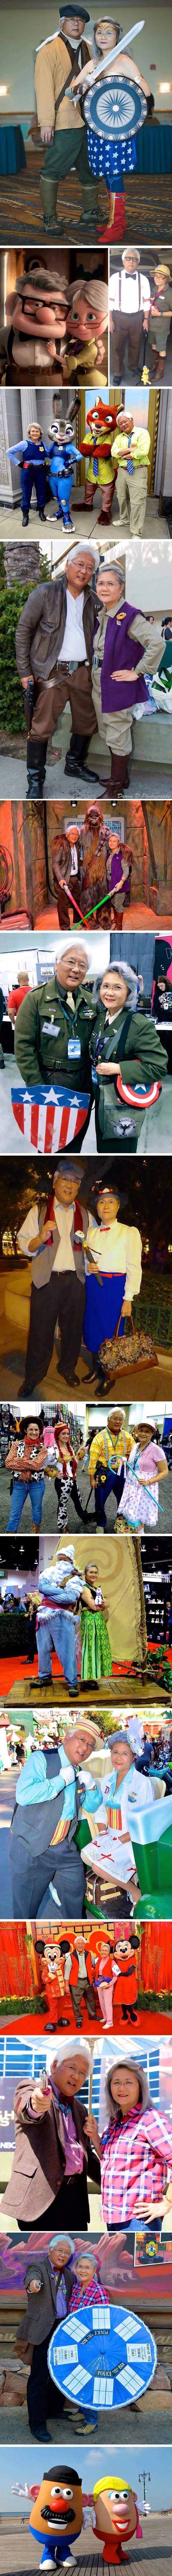 1970211395_kI06yFXE_Retired-couple-that-cosplays-together-is-the-very-definition-of-relationship-goals.jpg